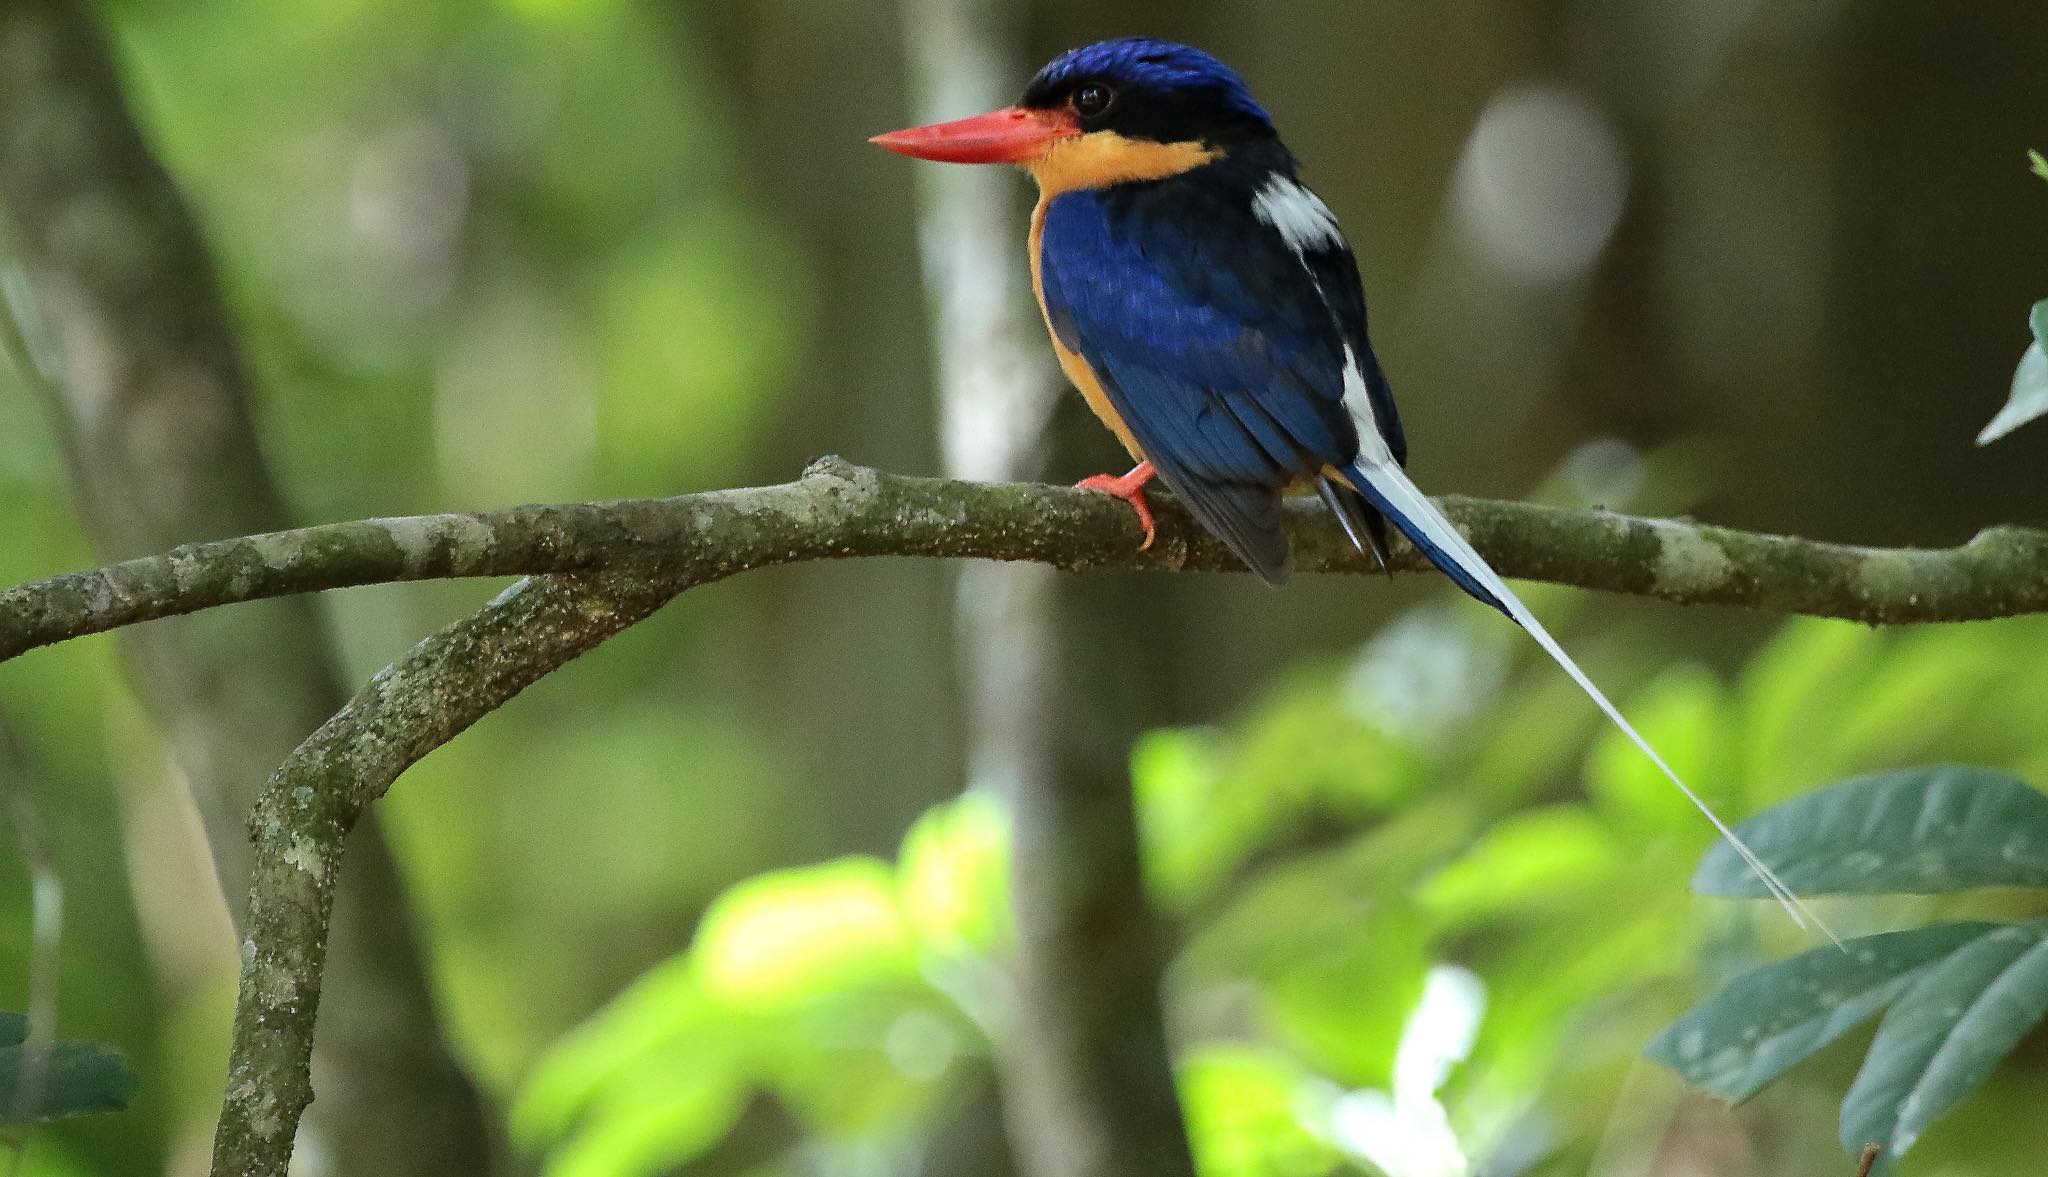 The Buff-breasted Paradise-Kingfisher migrates each year between PNG and northern Australia (Photo: Graham Winterflood/Flickr)